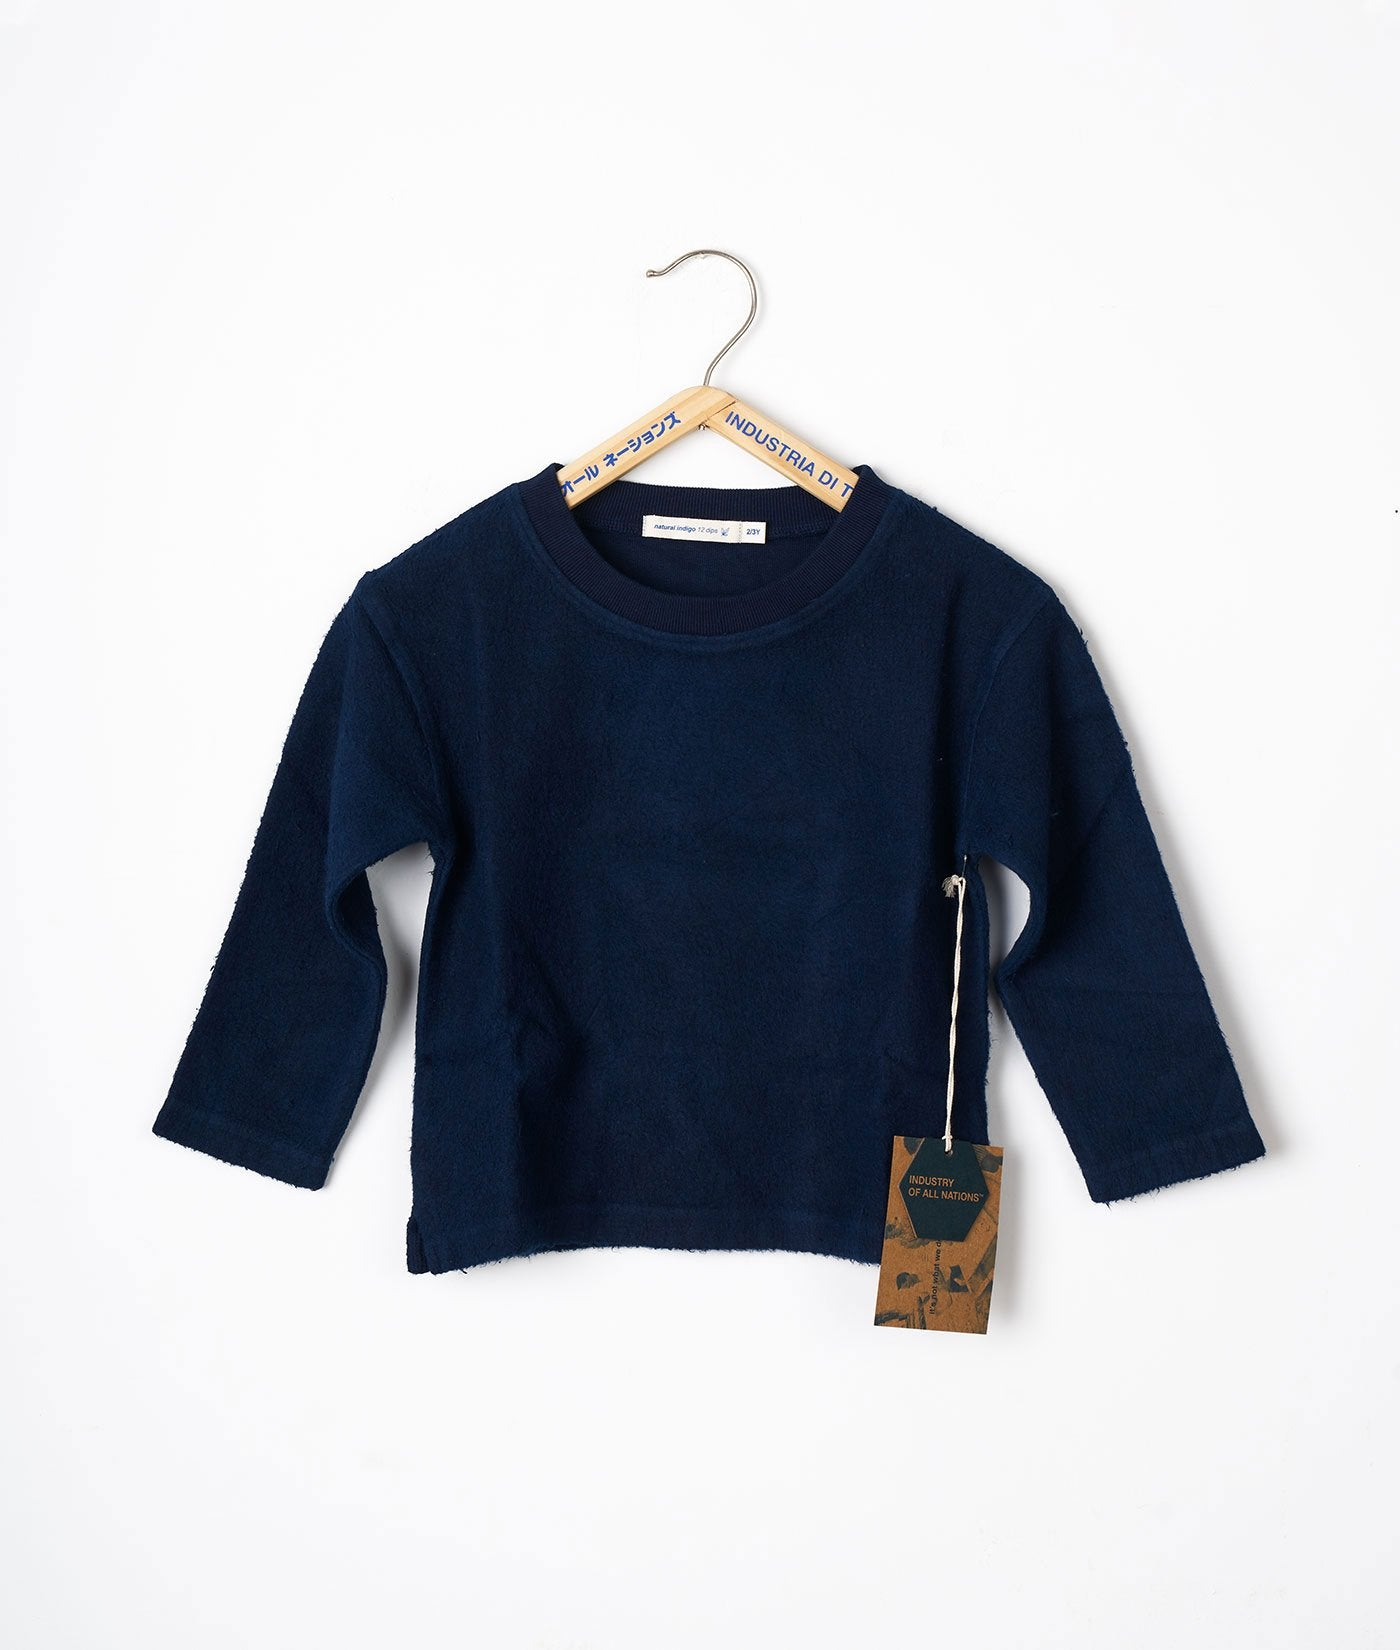 Industry of All Nations Kids Organic Cotton Sweatshirt